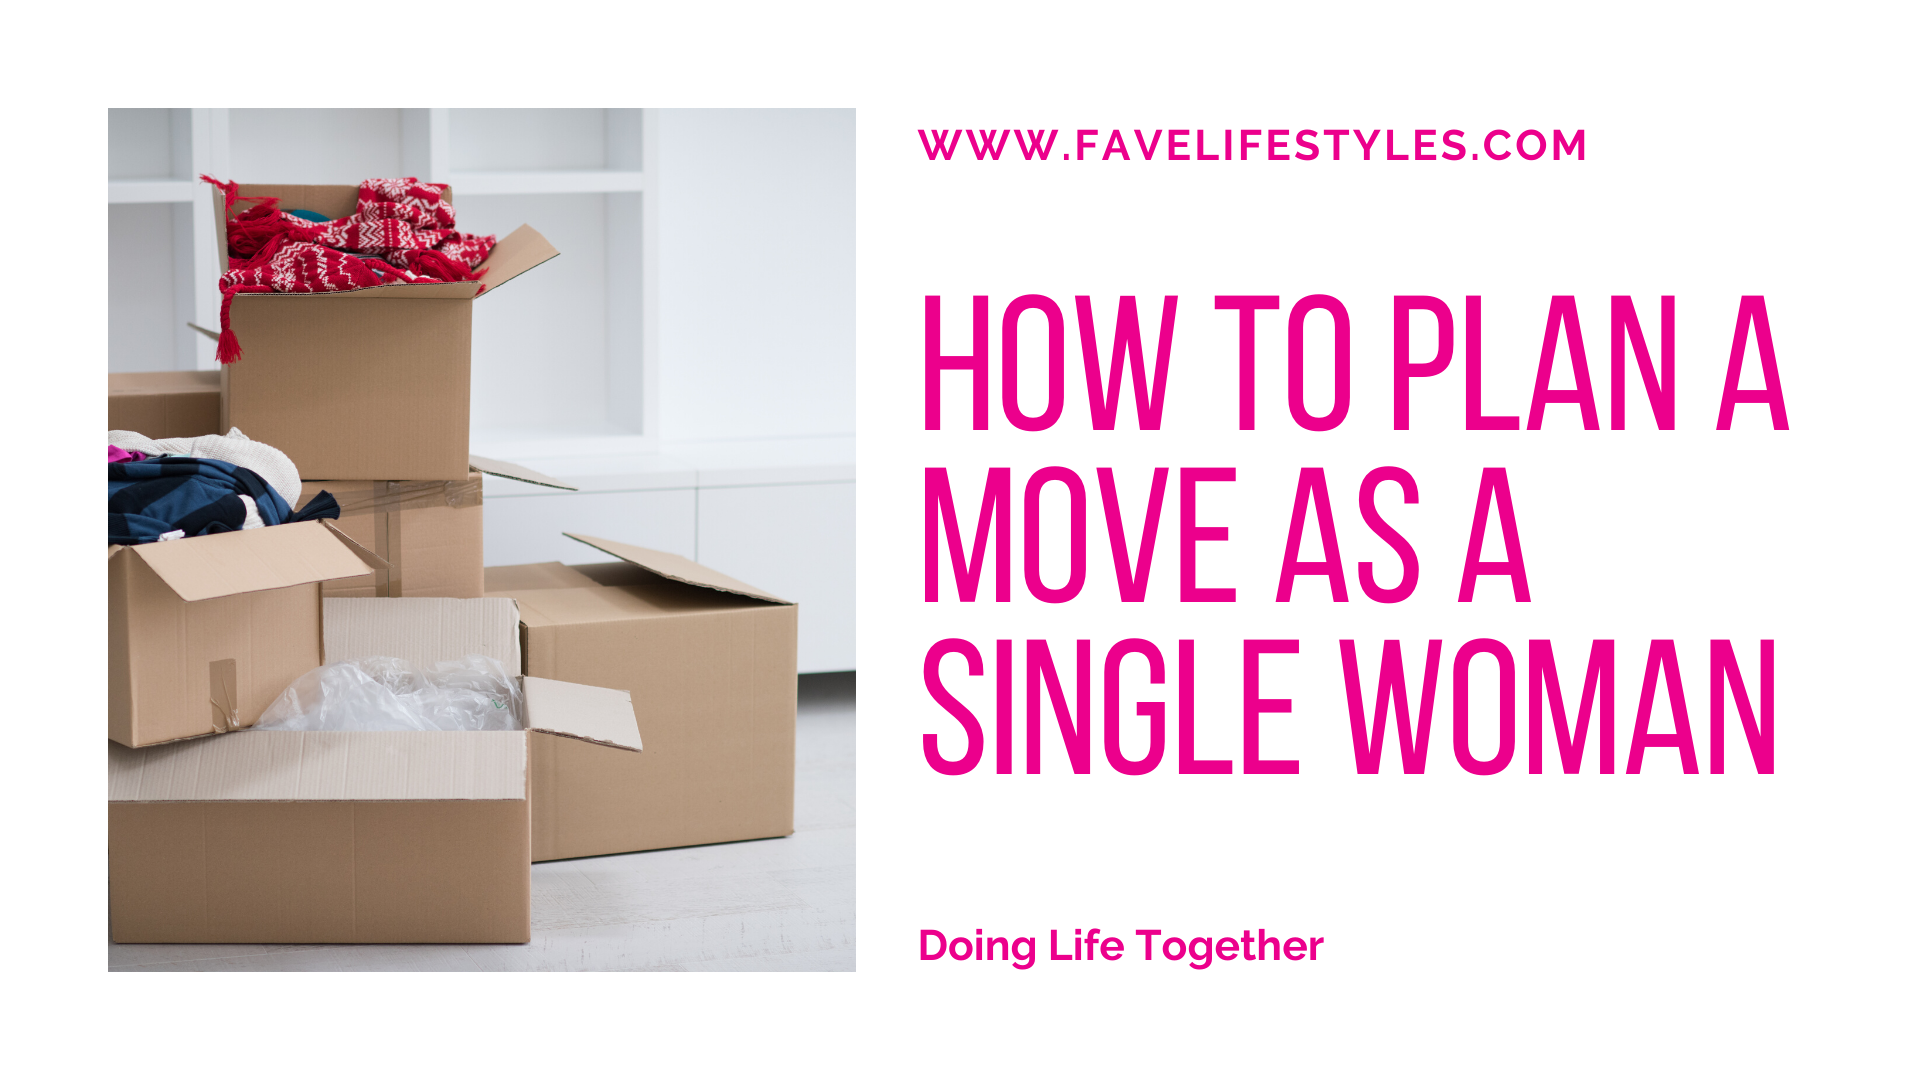 How To Plan A Move As A Single Woman